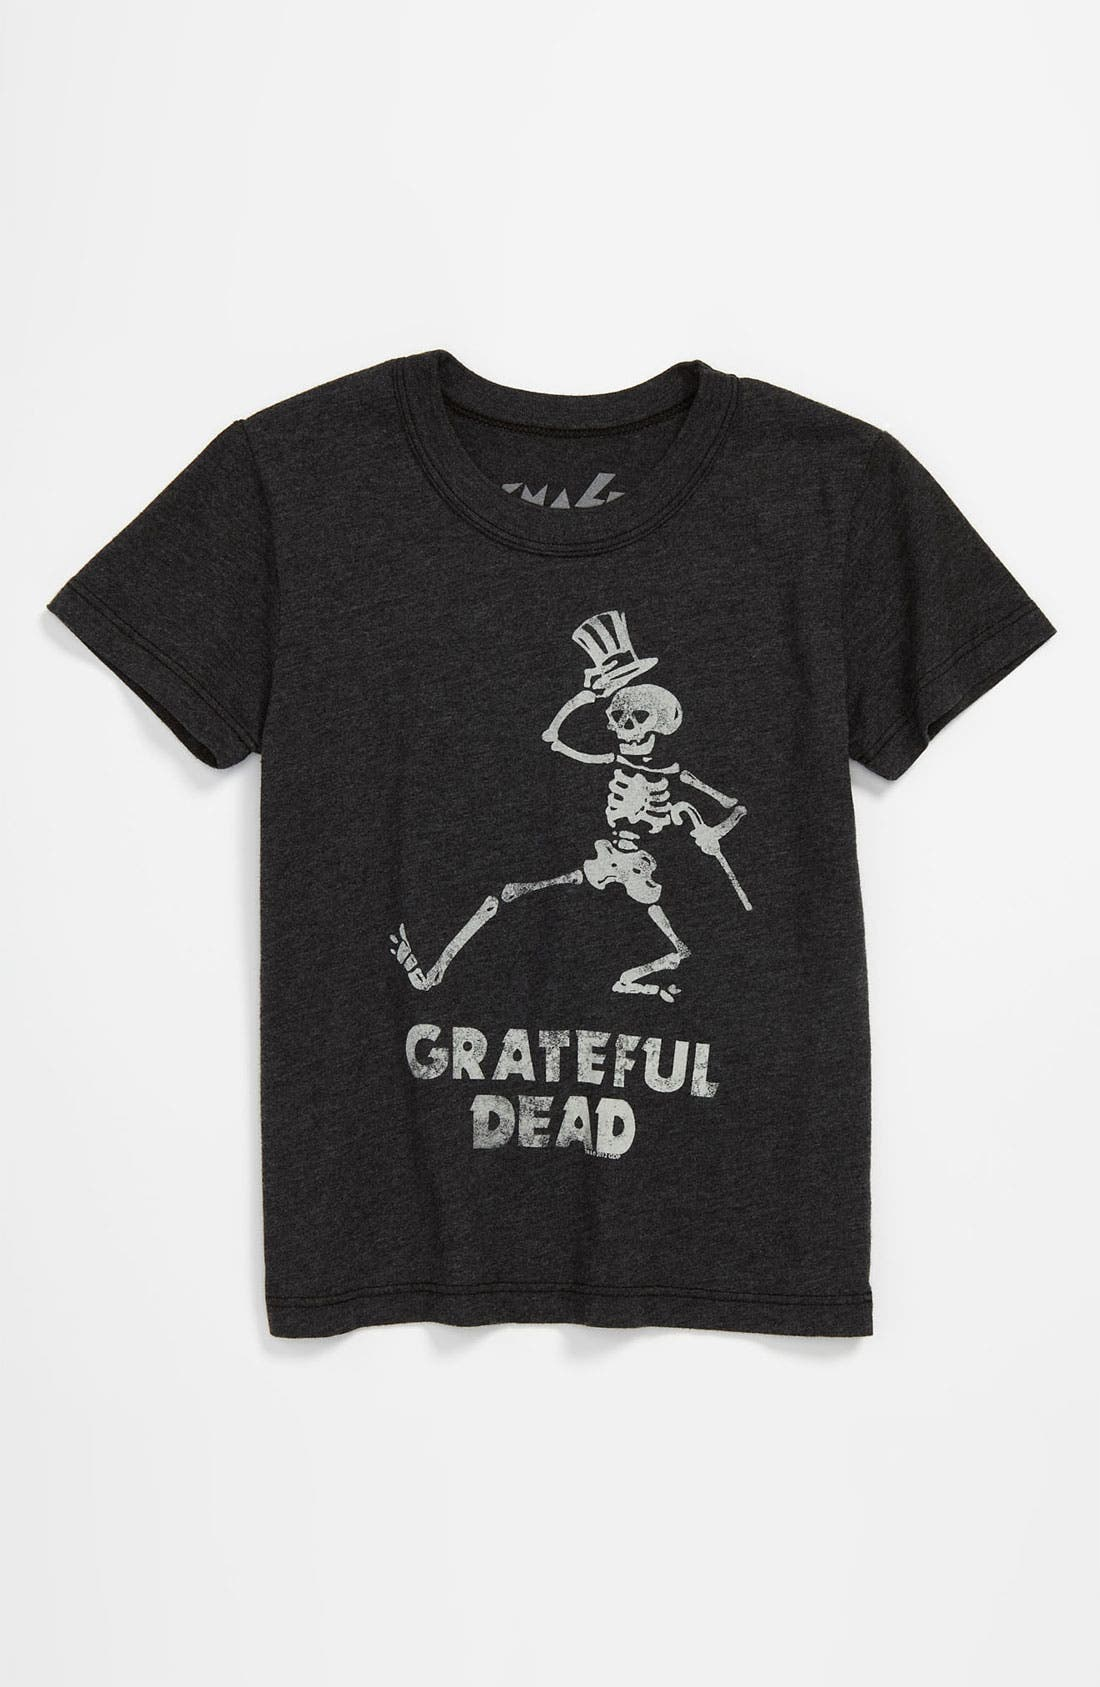 Alternate Image 1 Selected - Chaser 'Grateful Dead' T-Shirt (Toddler)